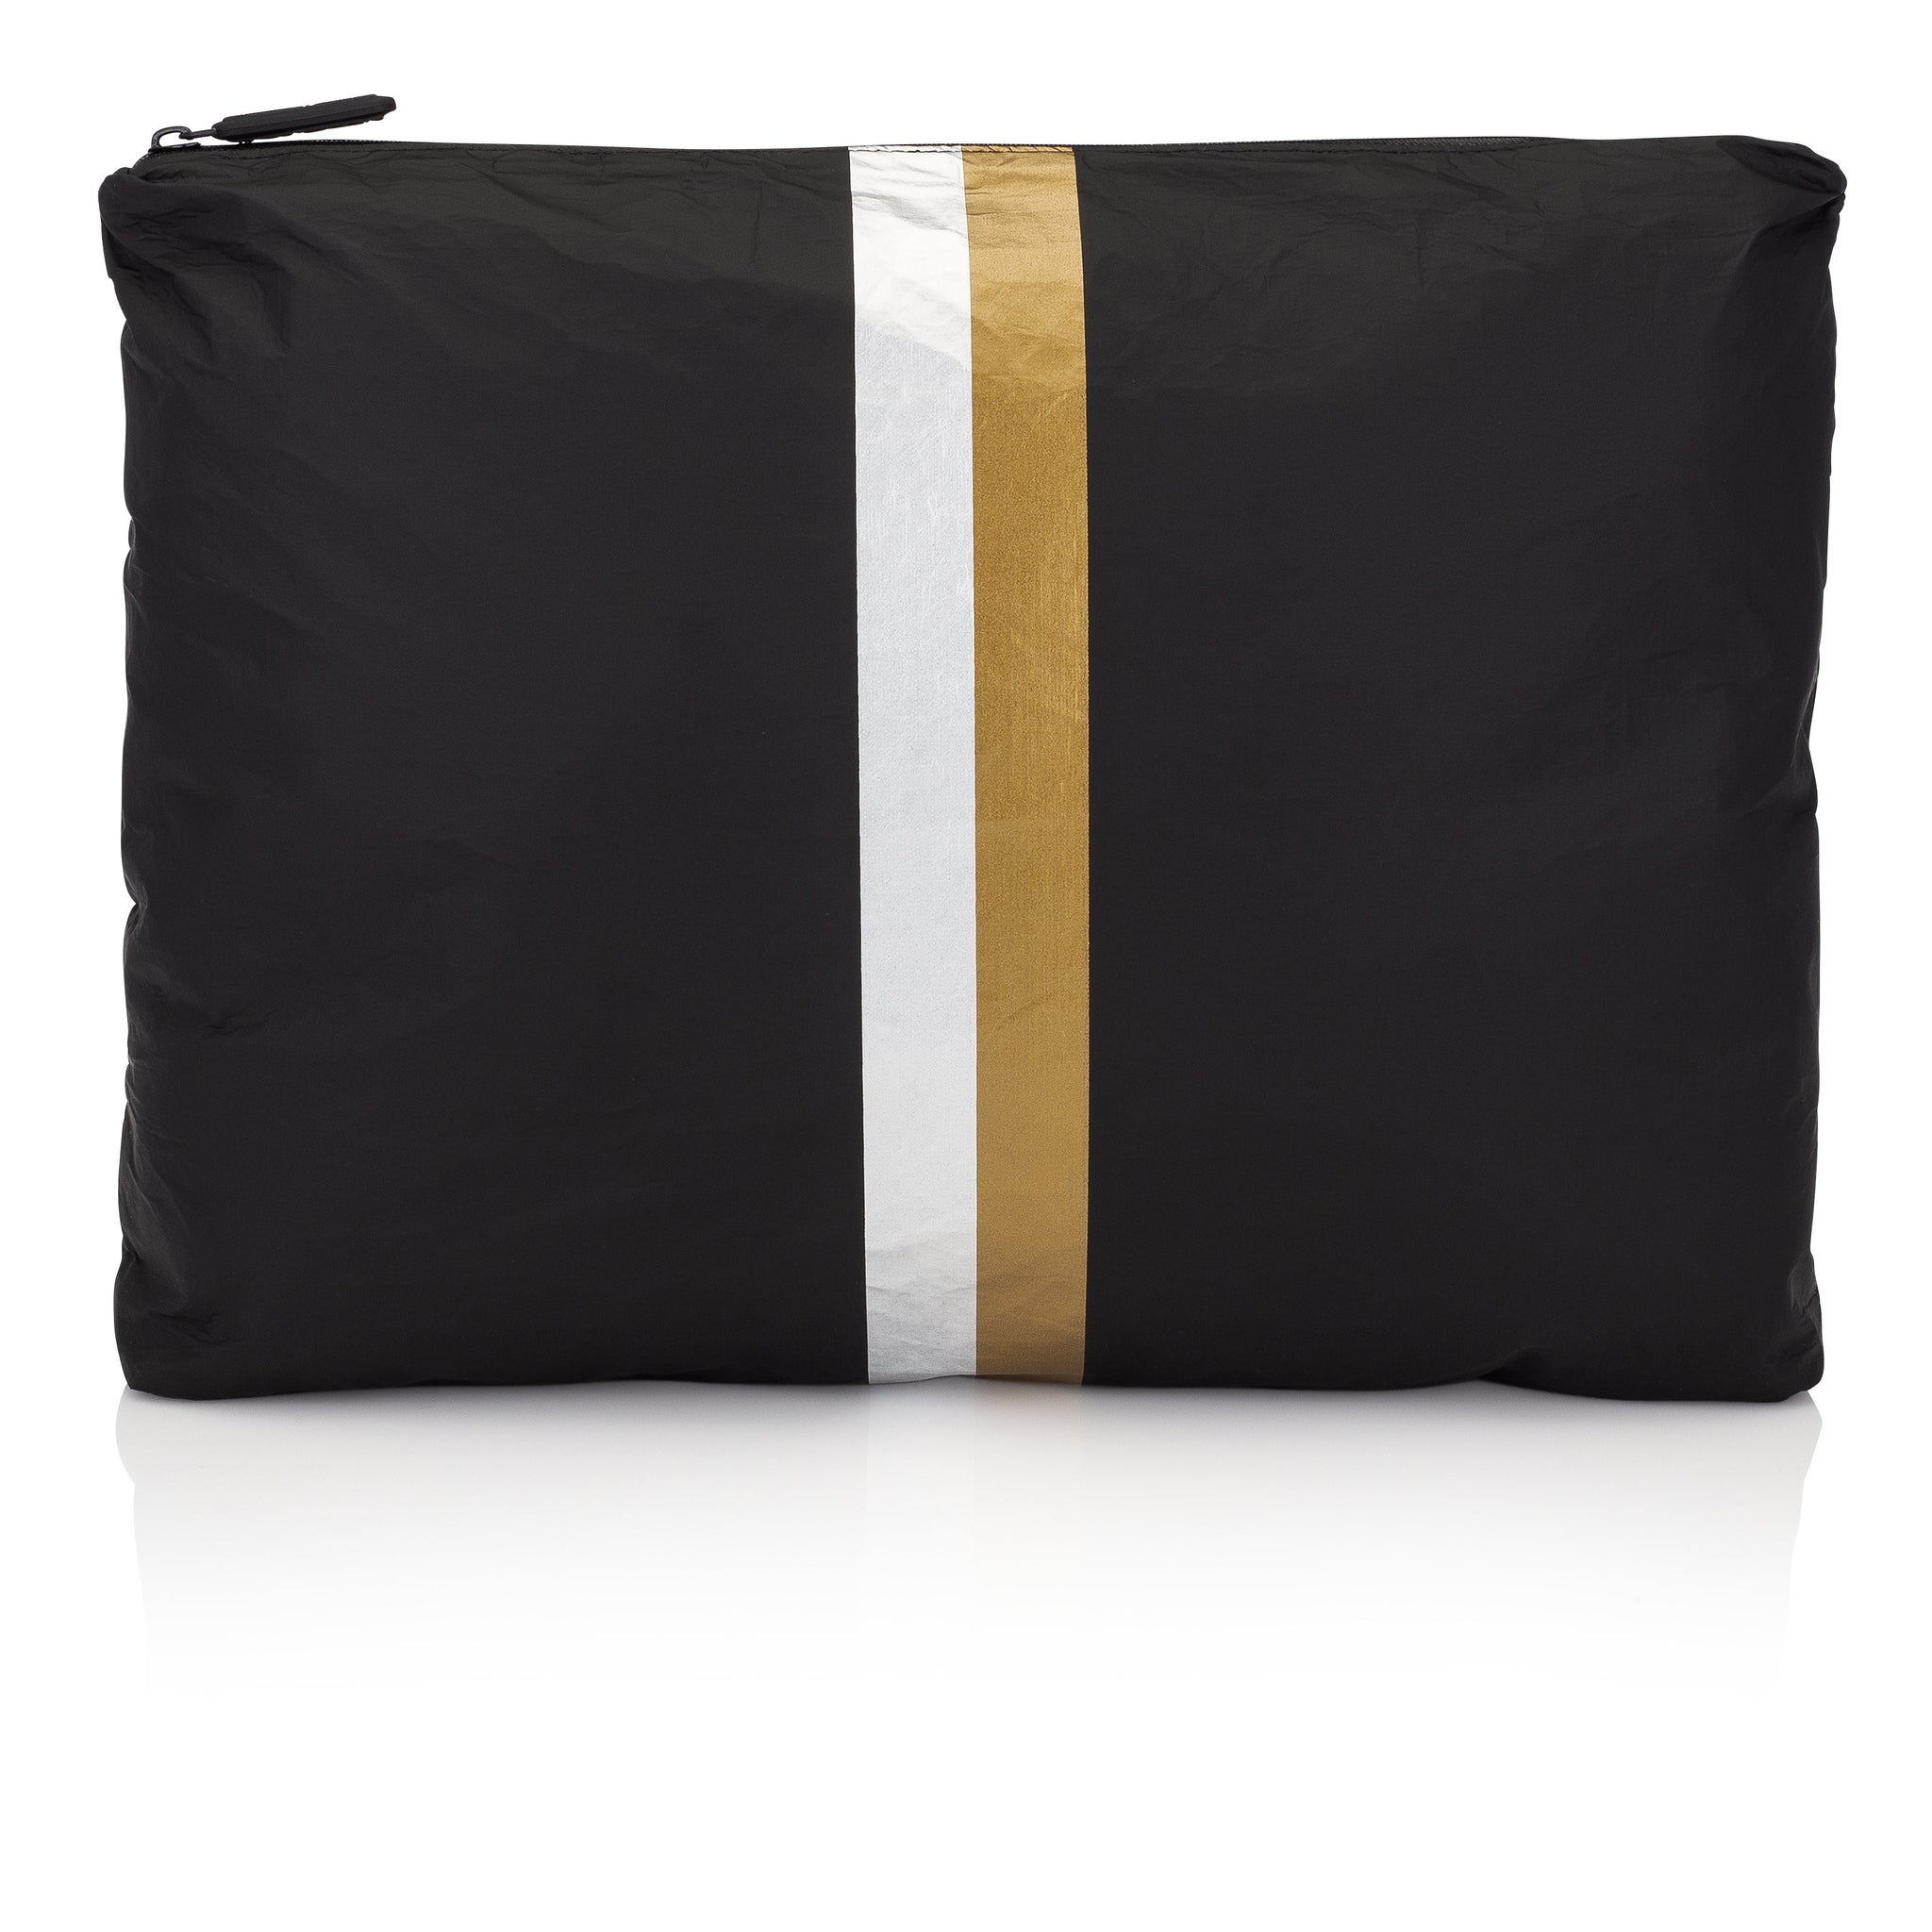 Jumbo Pack - Black HLT Collection with Metallic Silver and Gold Stripes